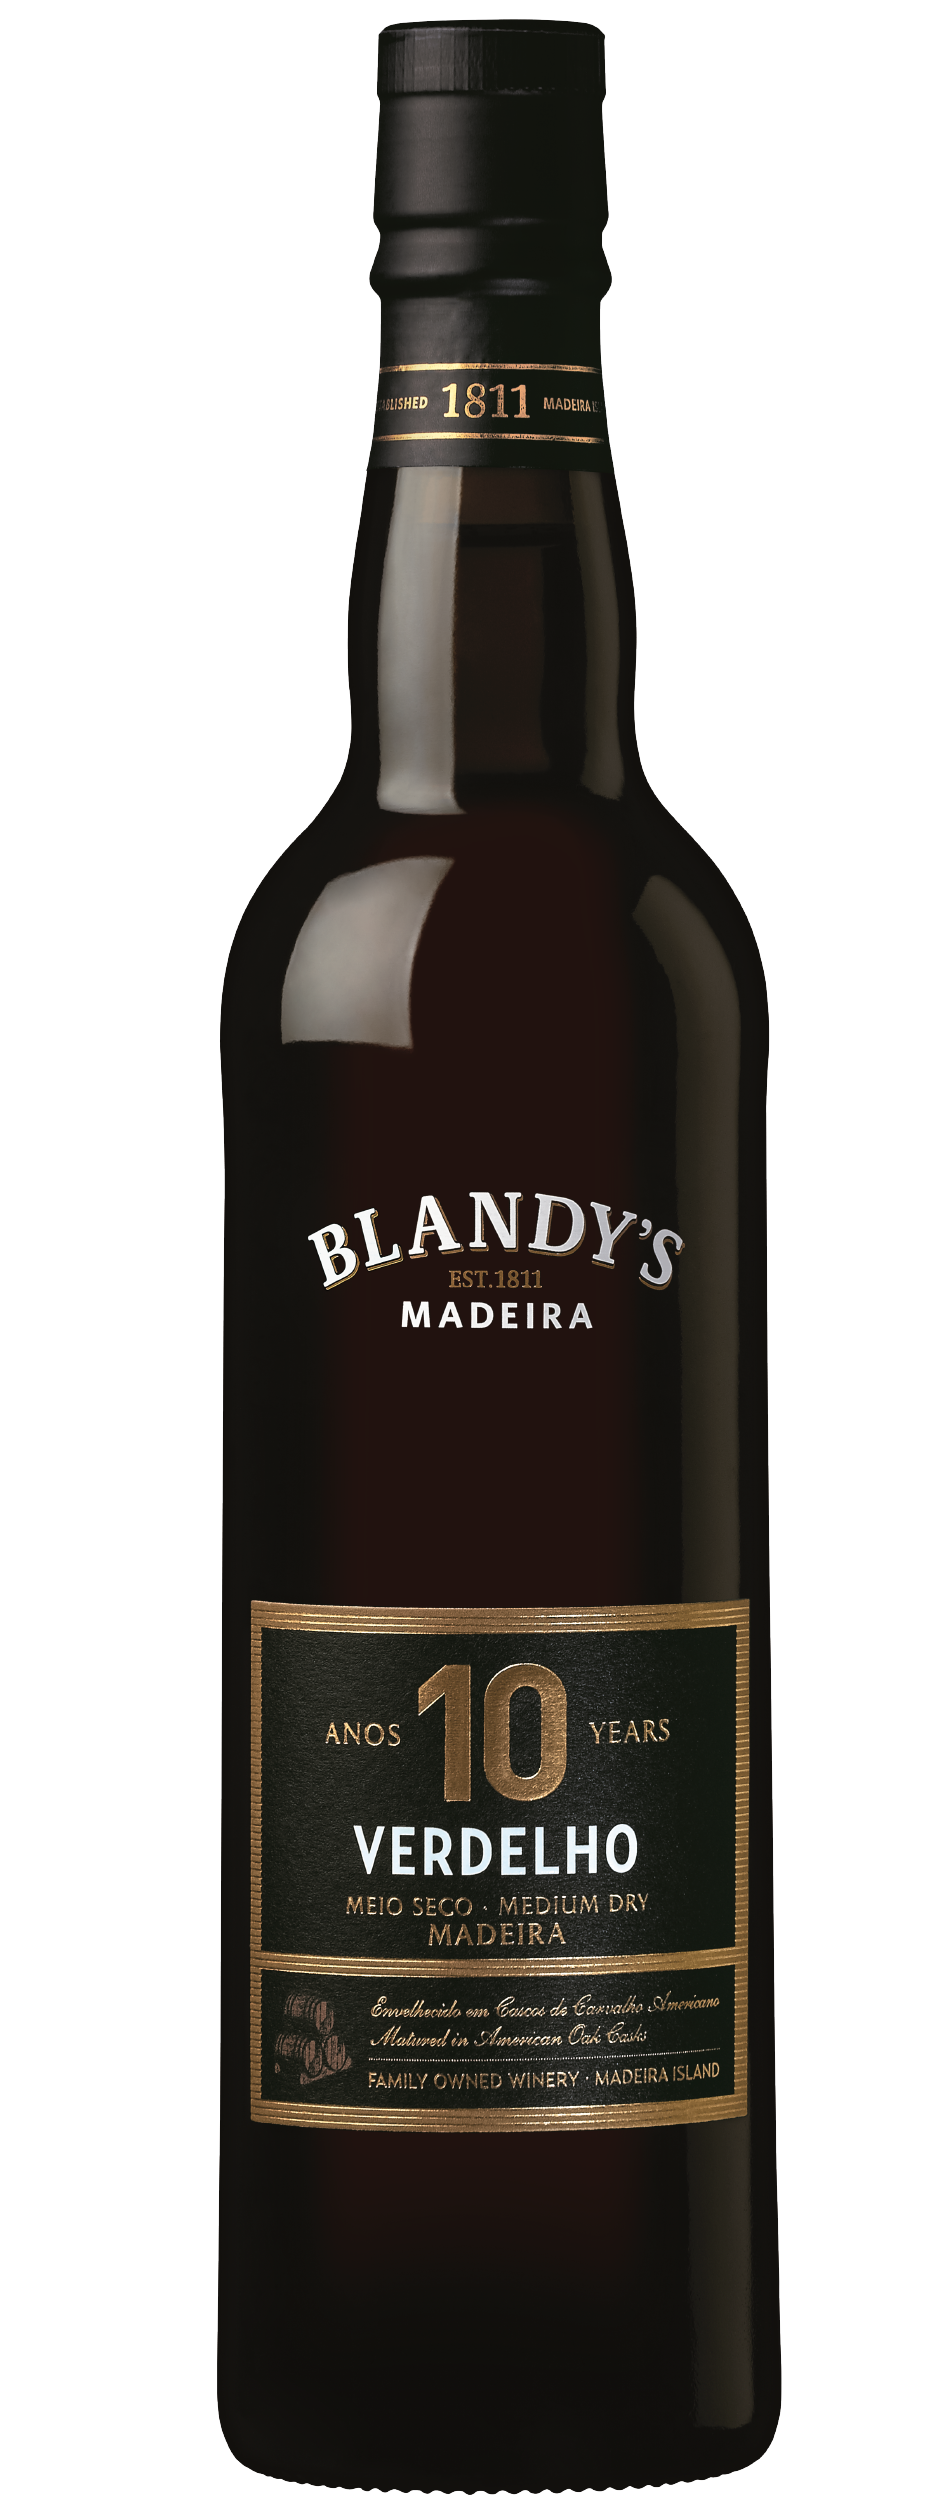 Product Image for BLANDY'S VERDELHO 10 YEAR OLD